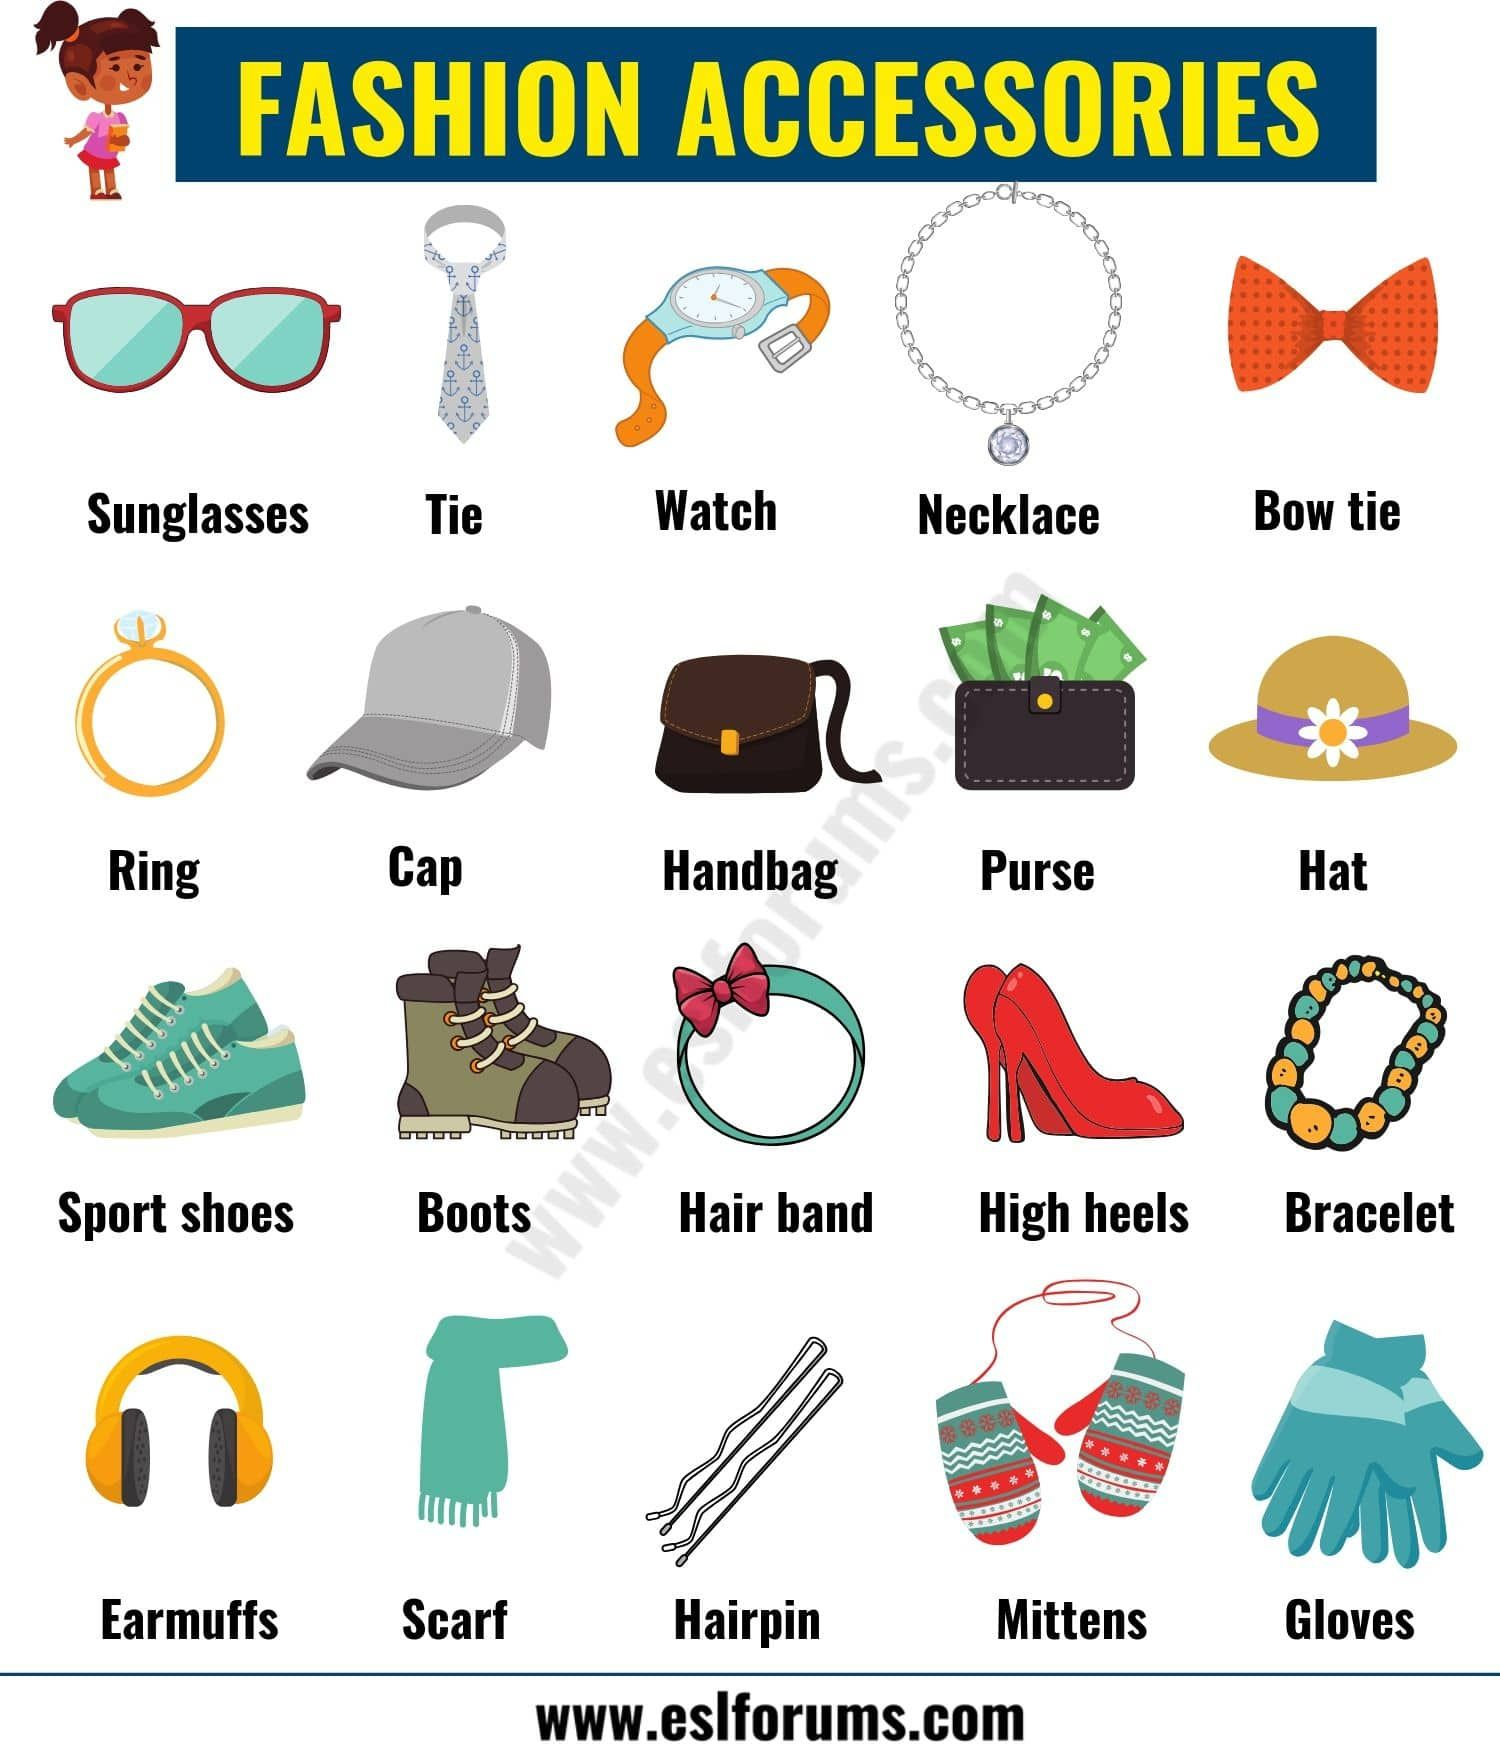 Fashion Accessories List Of Accessories For Men And Women In English Esl Forums English Clothes English Fashion Accessories